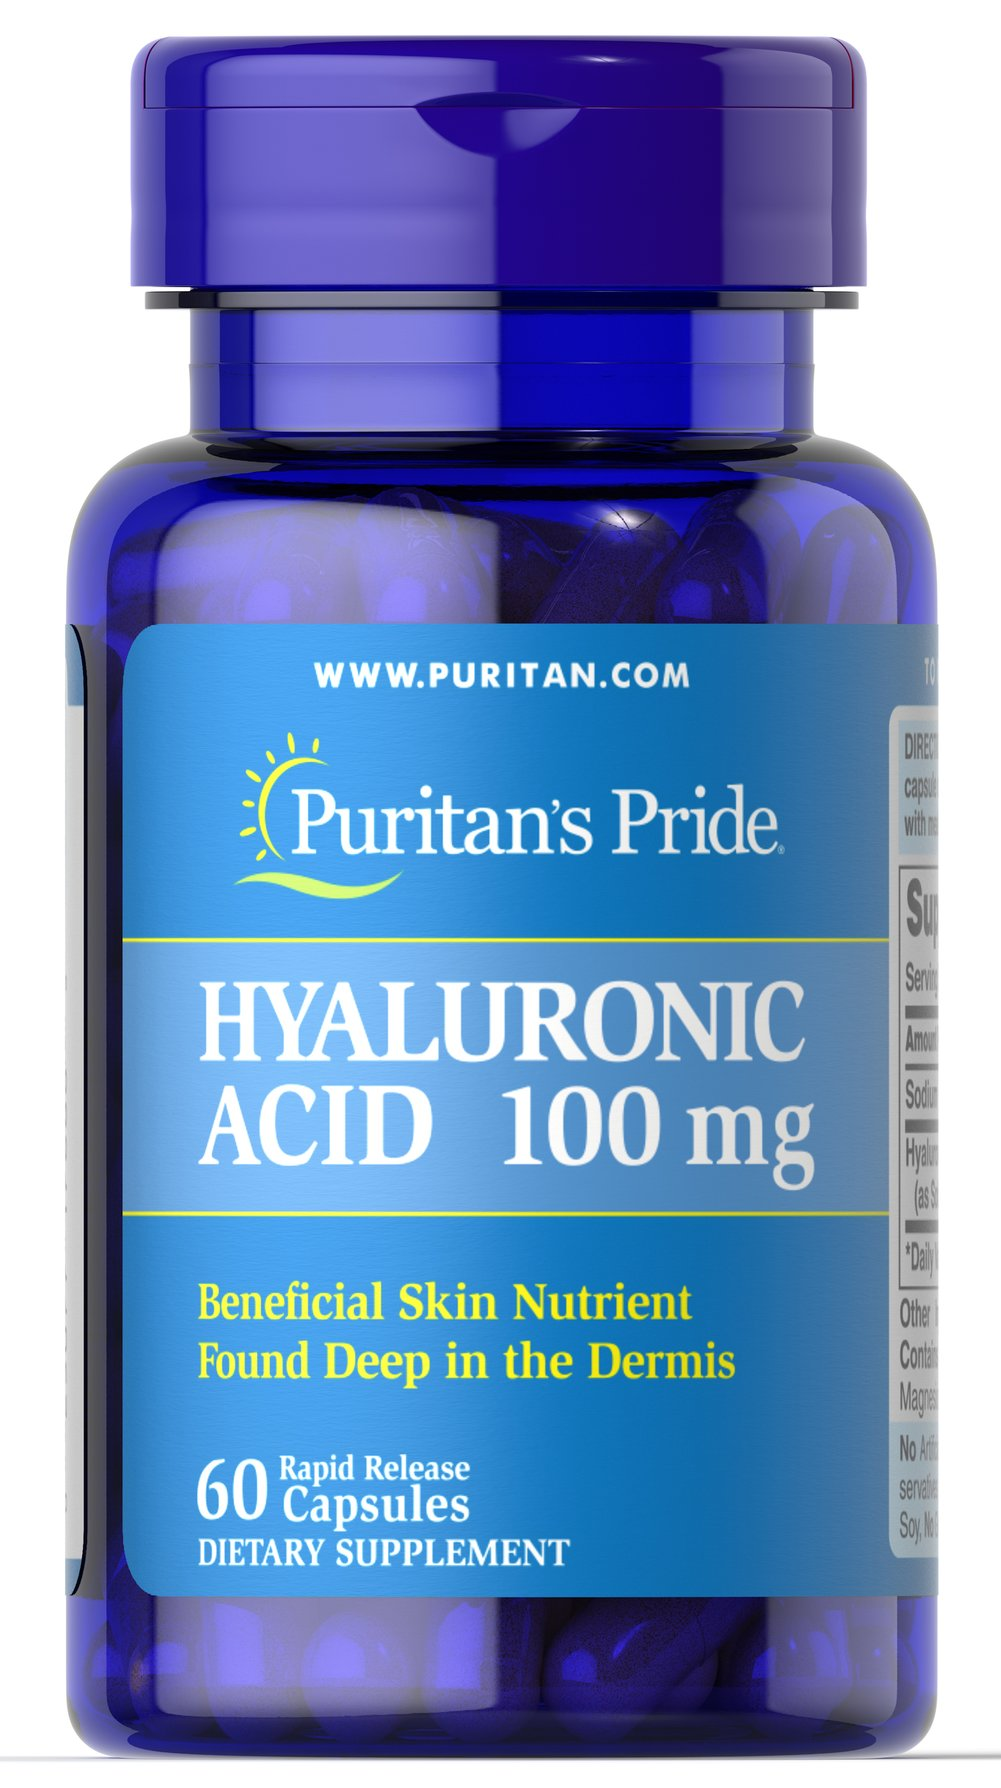 Hyaluronic Acid 100 mg <p>Helps lubricate joints**</p><p>Hyaluronic Acid is a polysaccharide found in almost all adult connective tissue, including joints, ligaments, tendons and skin.** Just one Hyaluronic Acid capsule a day can help maintain the fluid between your joints, providing the cushioning and lubrication necessary for easy movement.**</p> 60 Capsules 100 mg $57.99